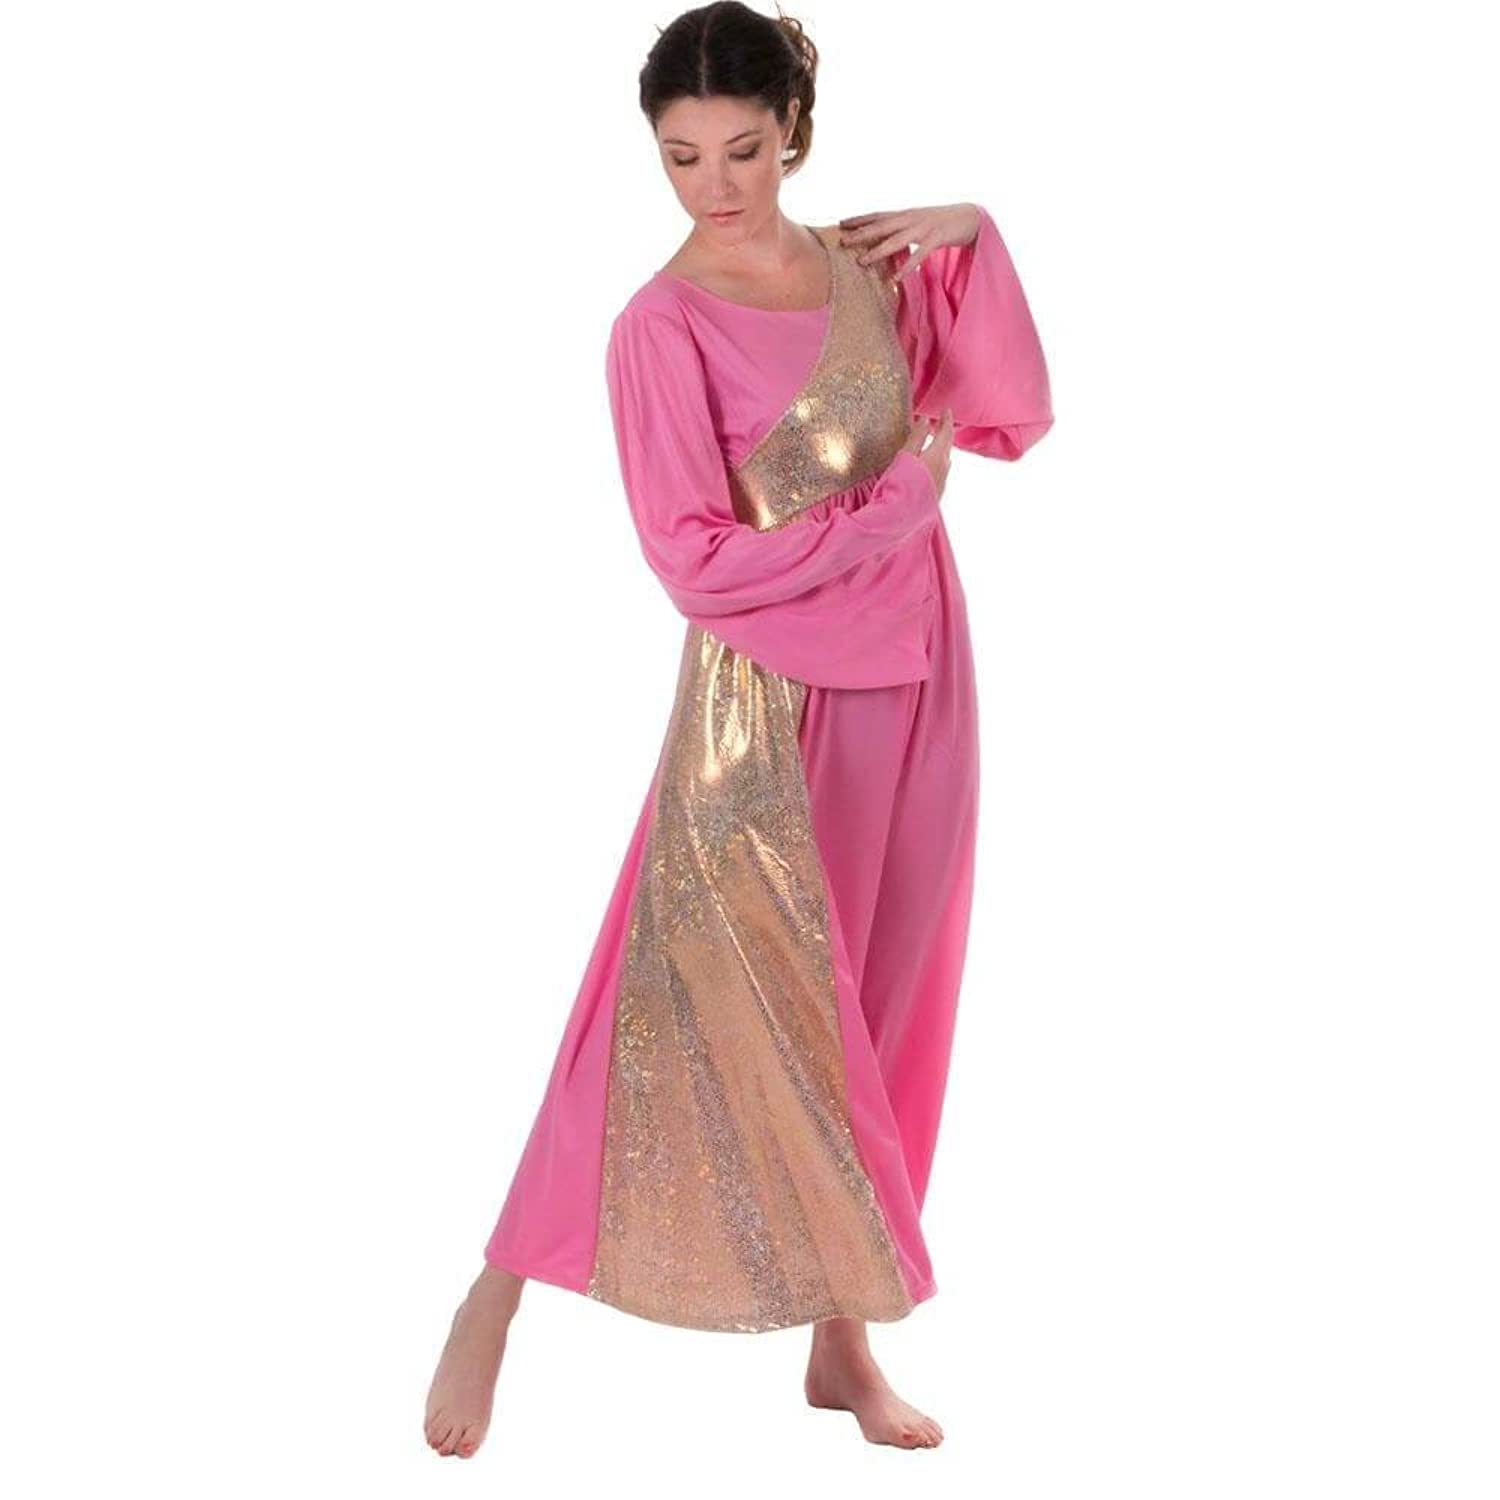 Danzcue Womens Shimmery Asymmetrical Bell Sleeve Dance Dress